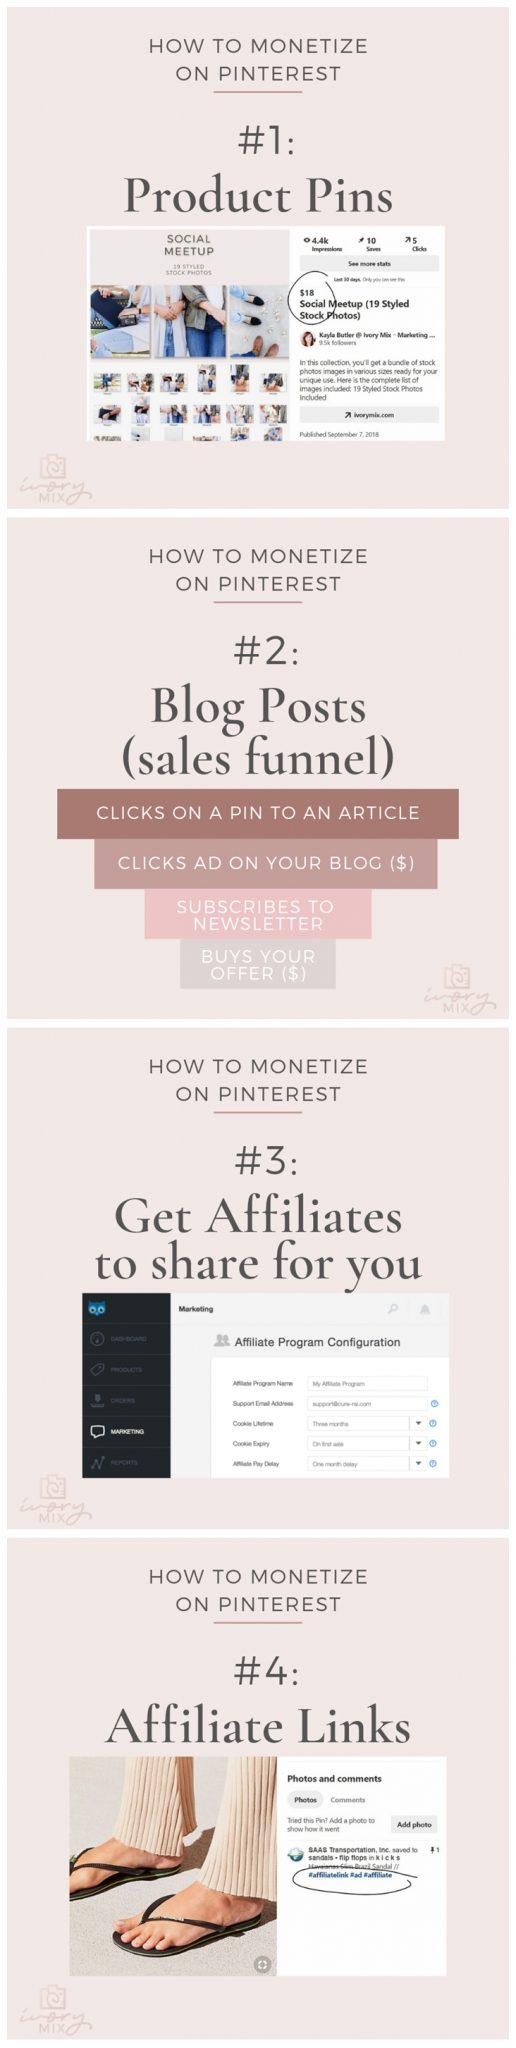 how you can make money on pinterest 4 different ways (one way can be without a blog too)